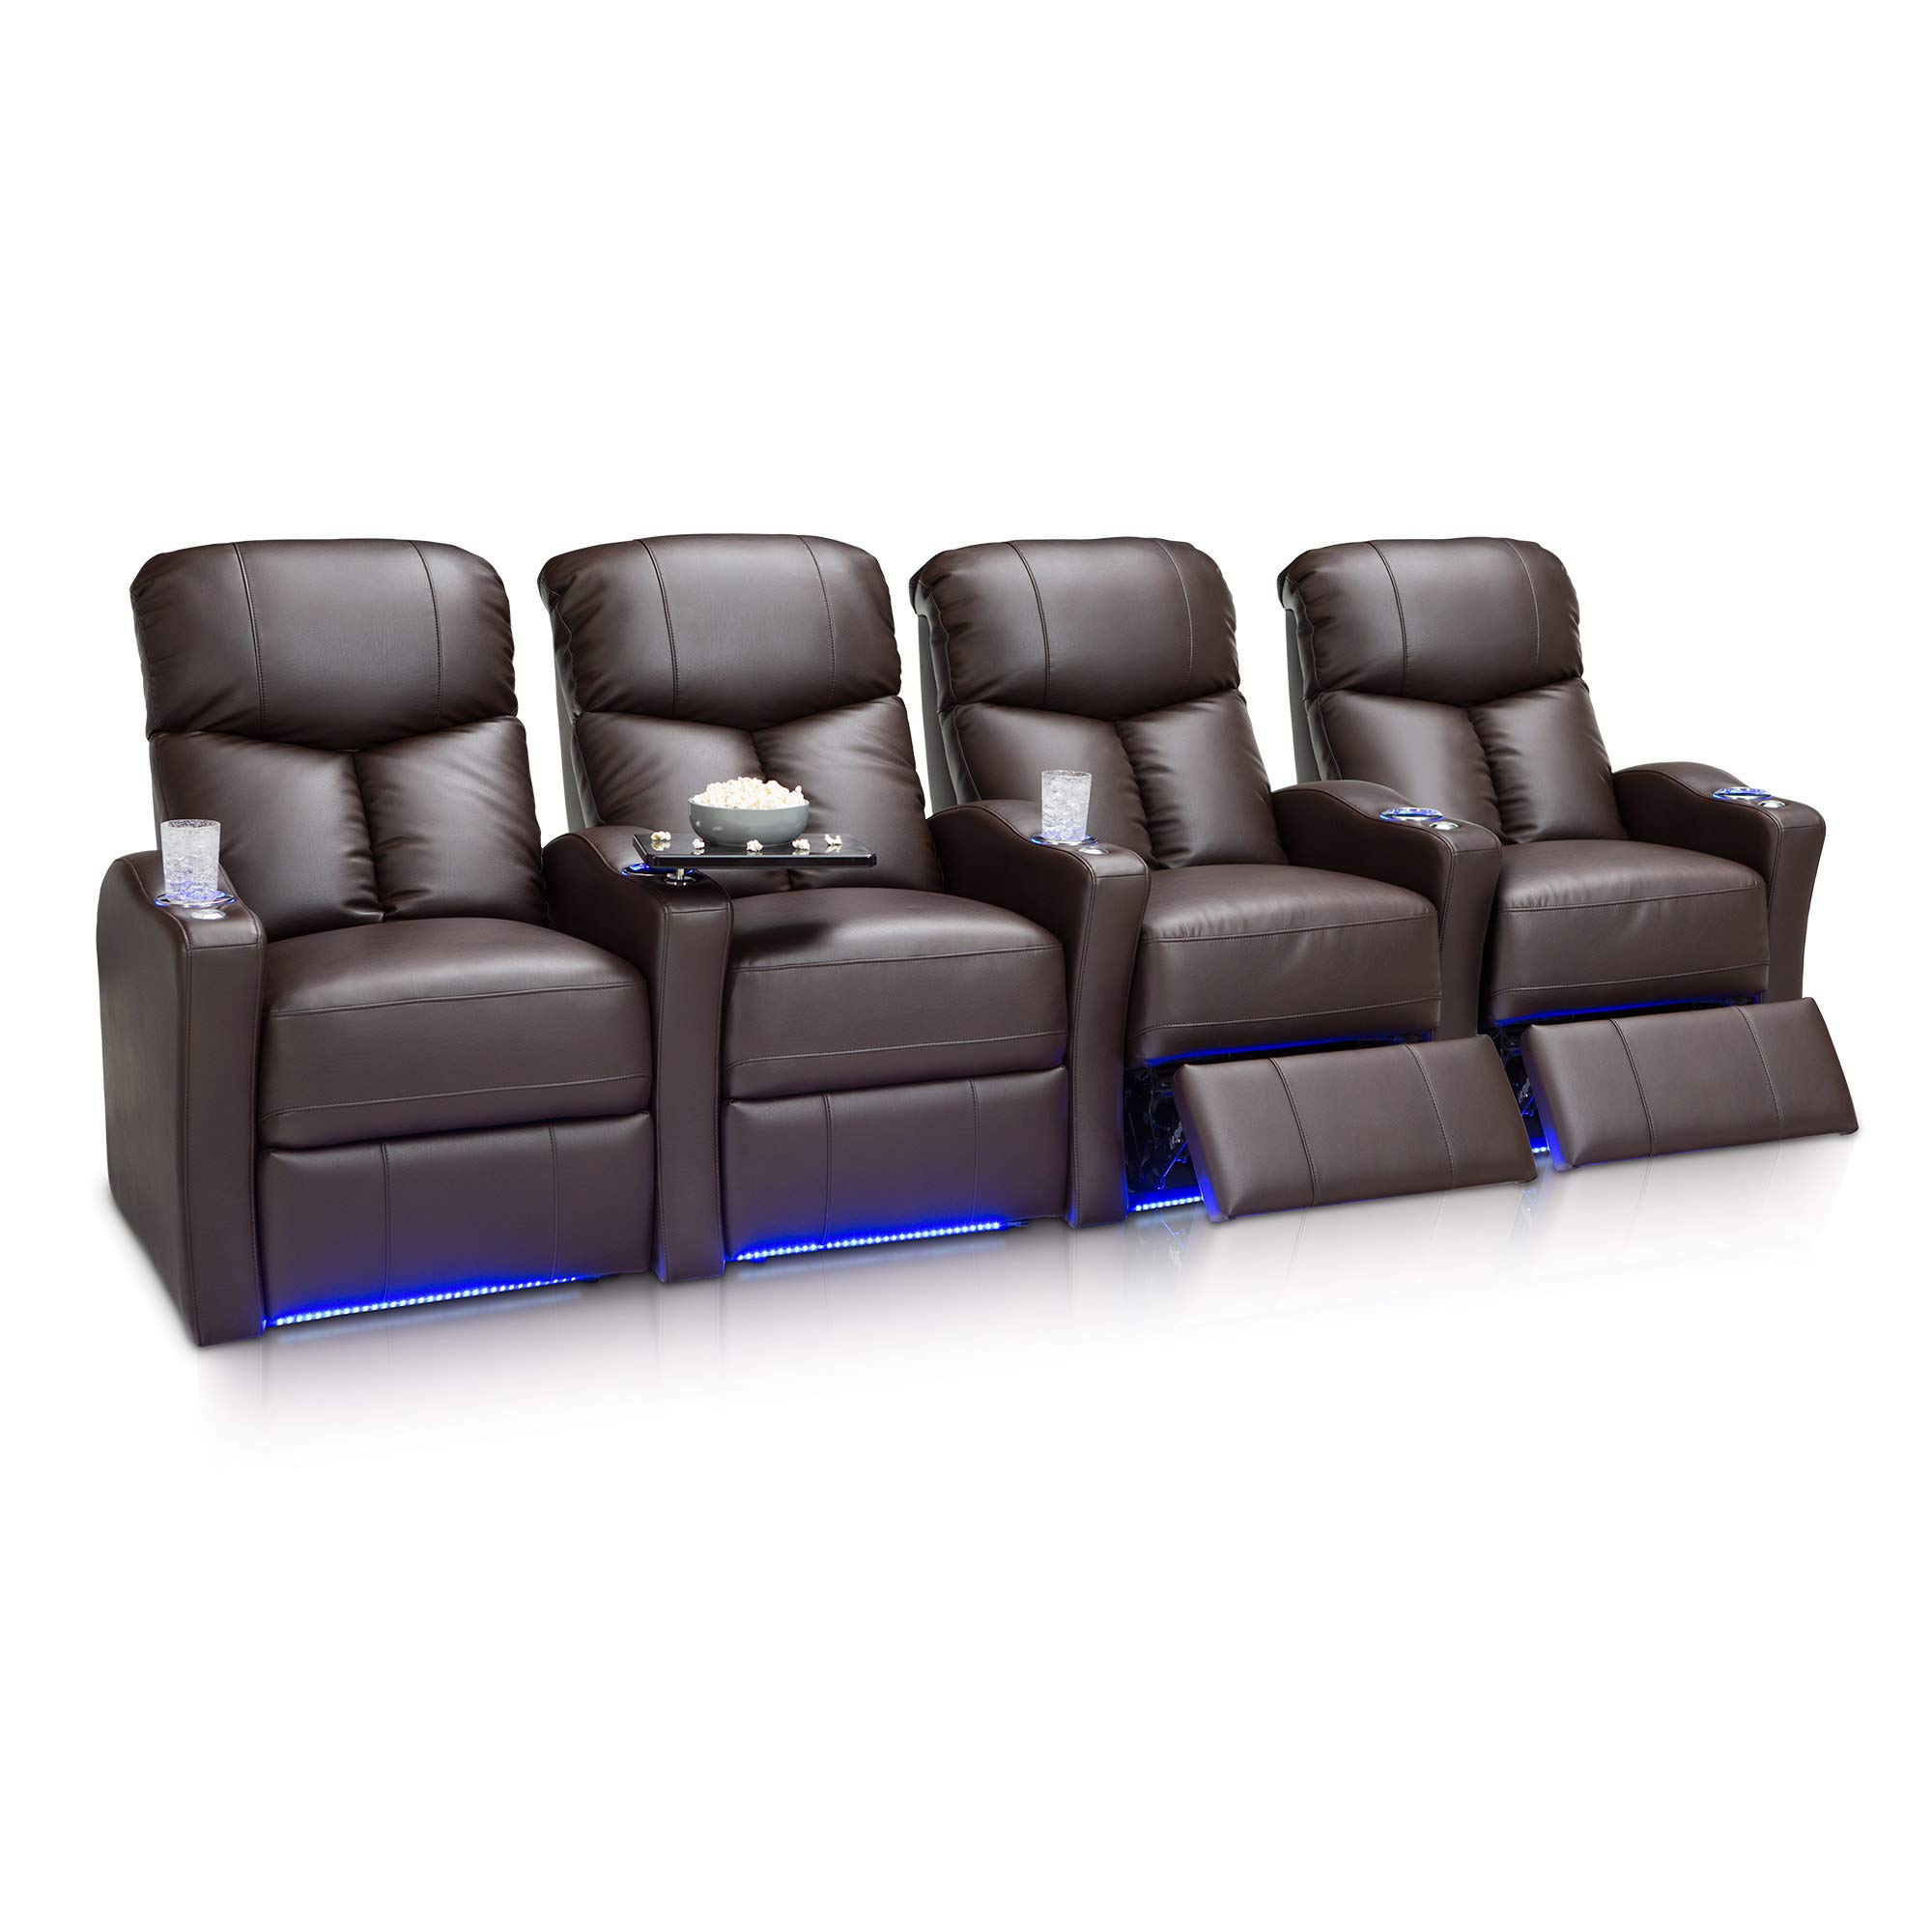 Seatcraft Raleigh Home Theater Seating Power Recline Leather Gel (Row of 4, Brown) by Seatcraft